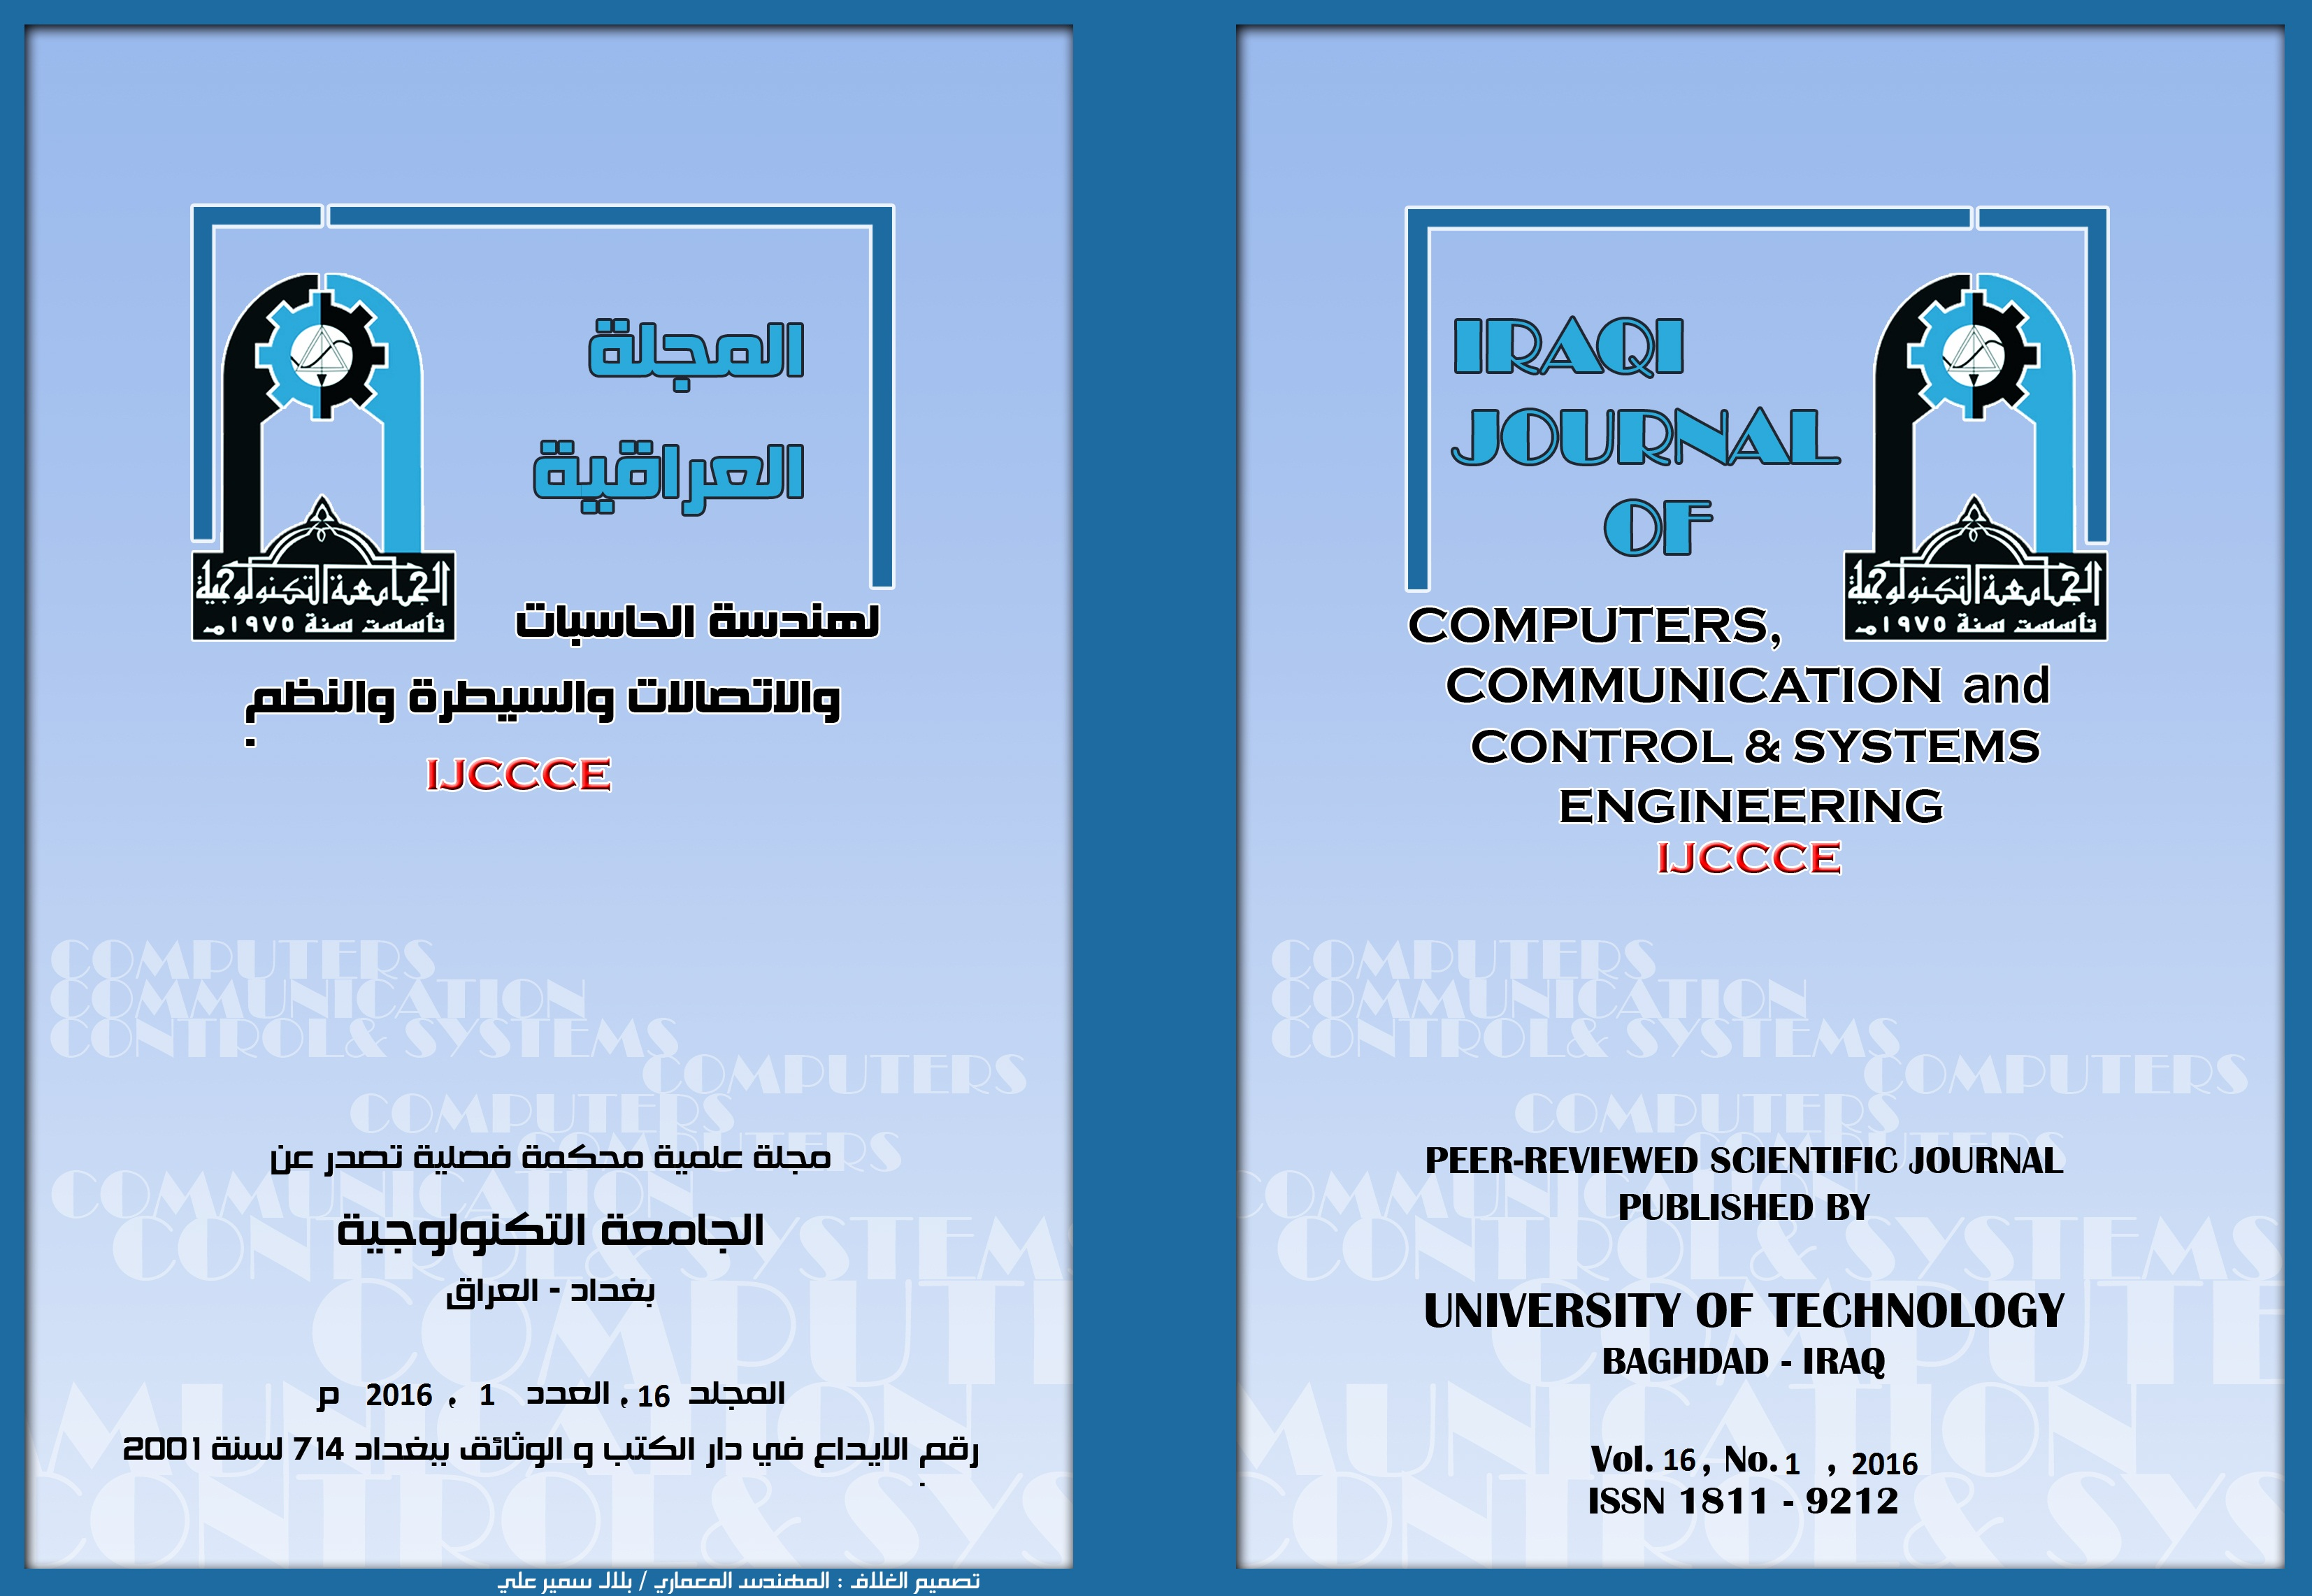 IRAQI JOURNAL OF COMPUTERS,COMMUNICATION AND CONTROL & SYSTEMS ENGINEERING